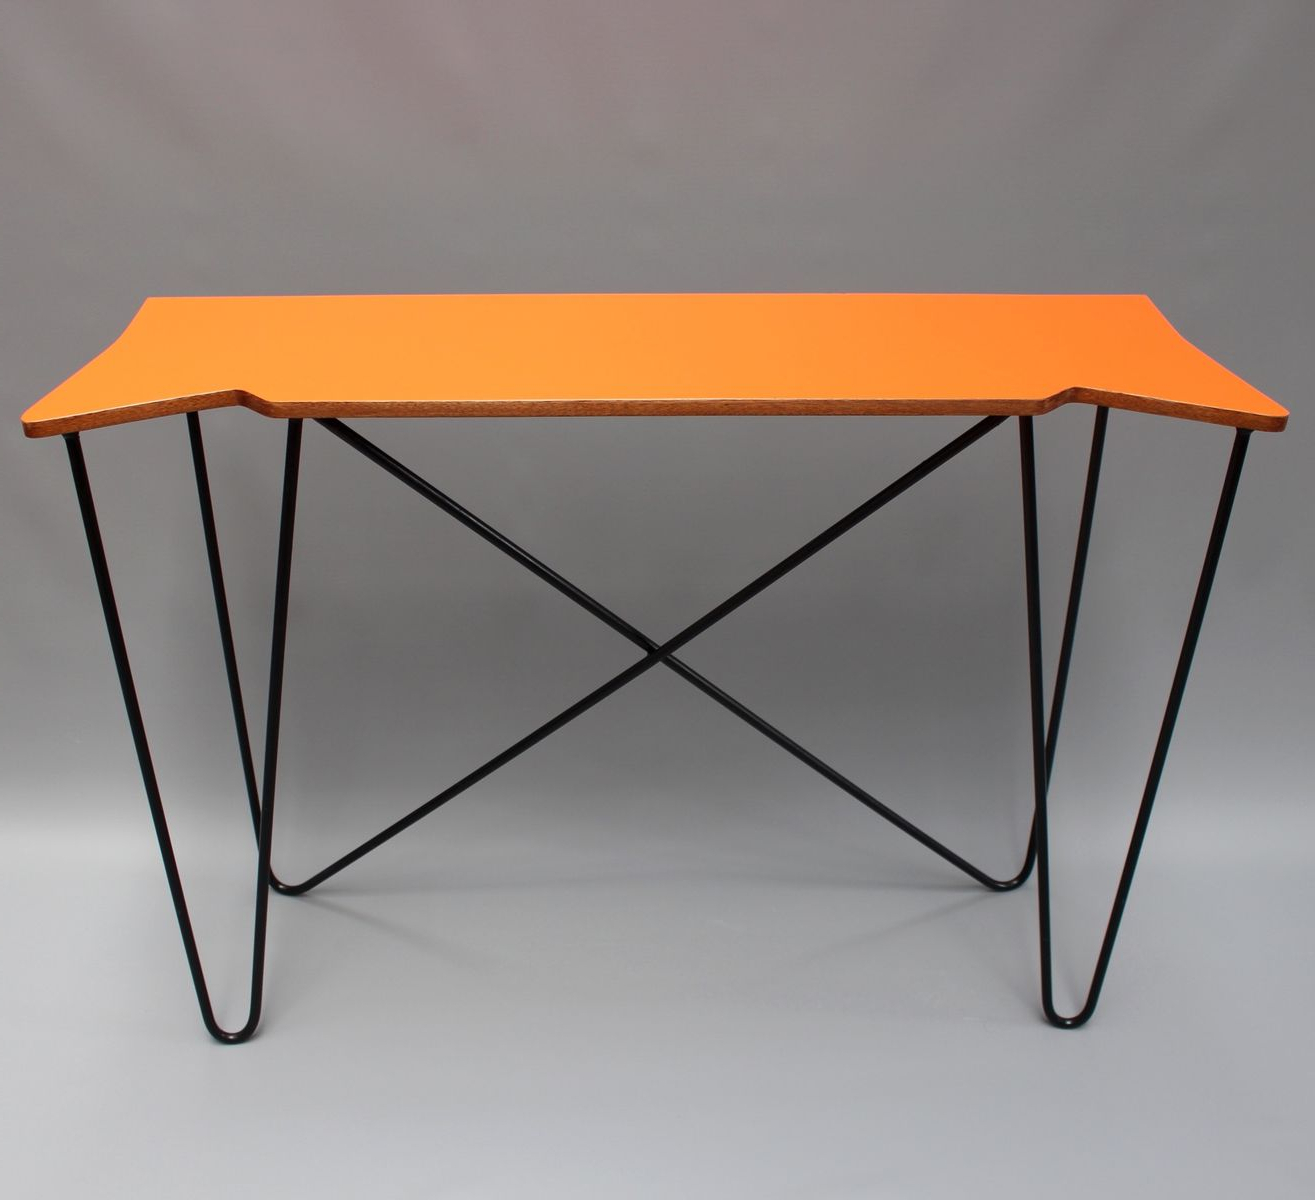 2018 Orange Inlay Console Tables With Regard To Vintage Orange Console Table 1980S For Sale At Pamono Bone Inlay (Gallery 2 of 20)